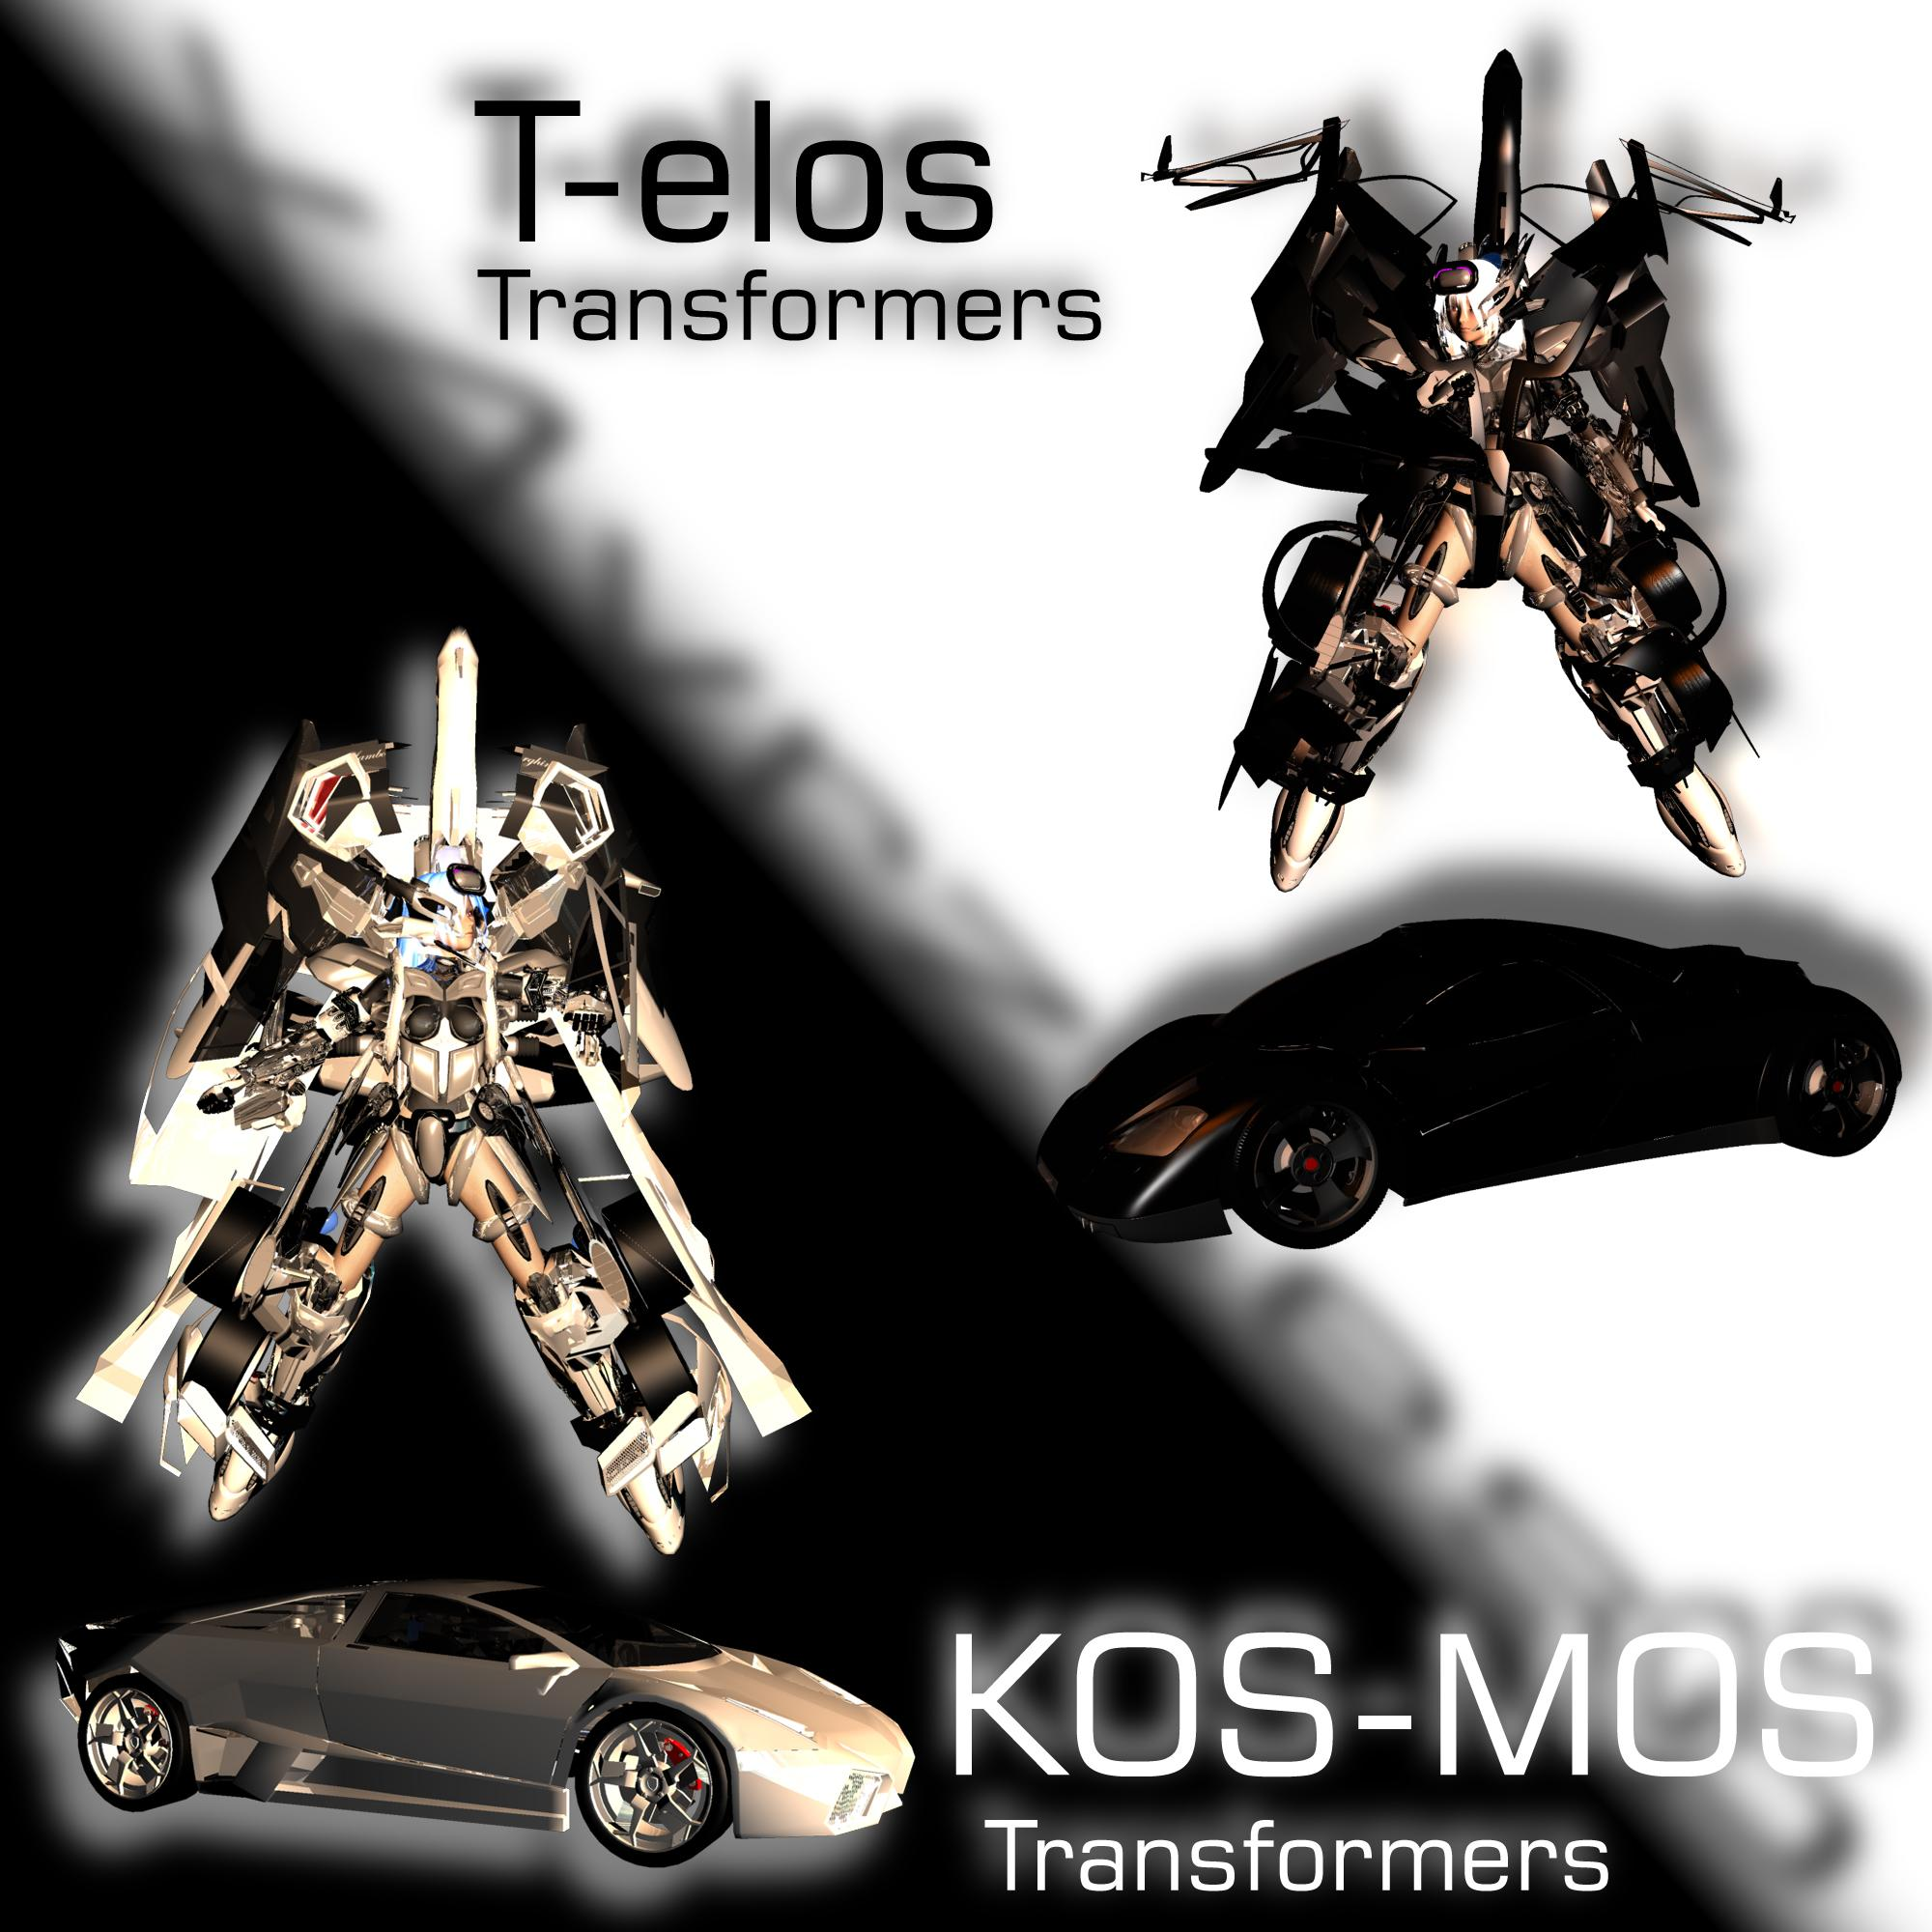 KOS-MOS Tr VS T-elos Tr by JPL-Animation